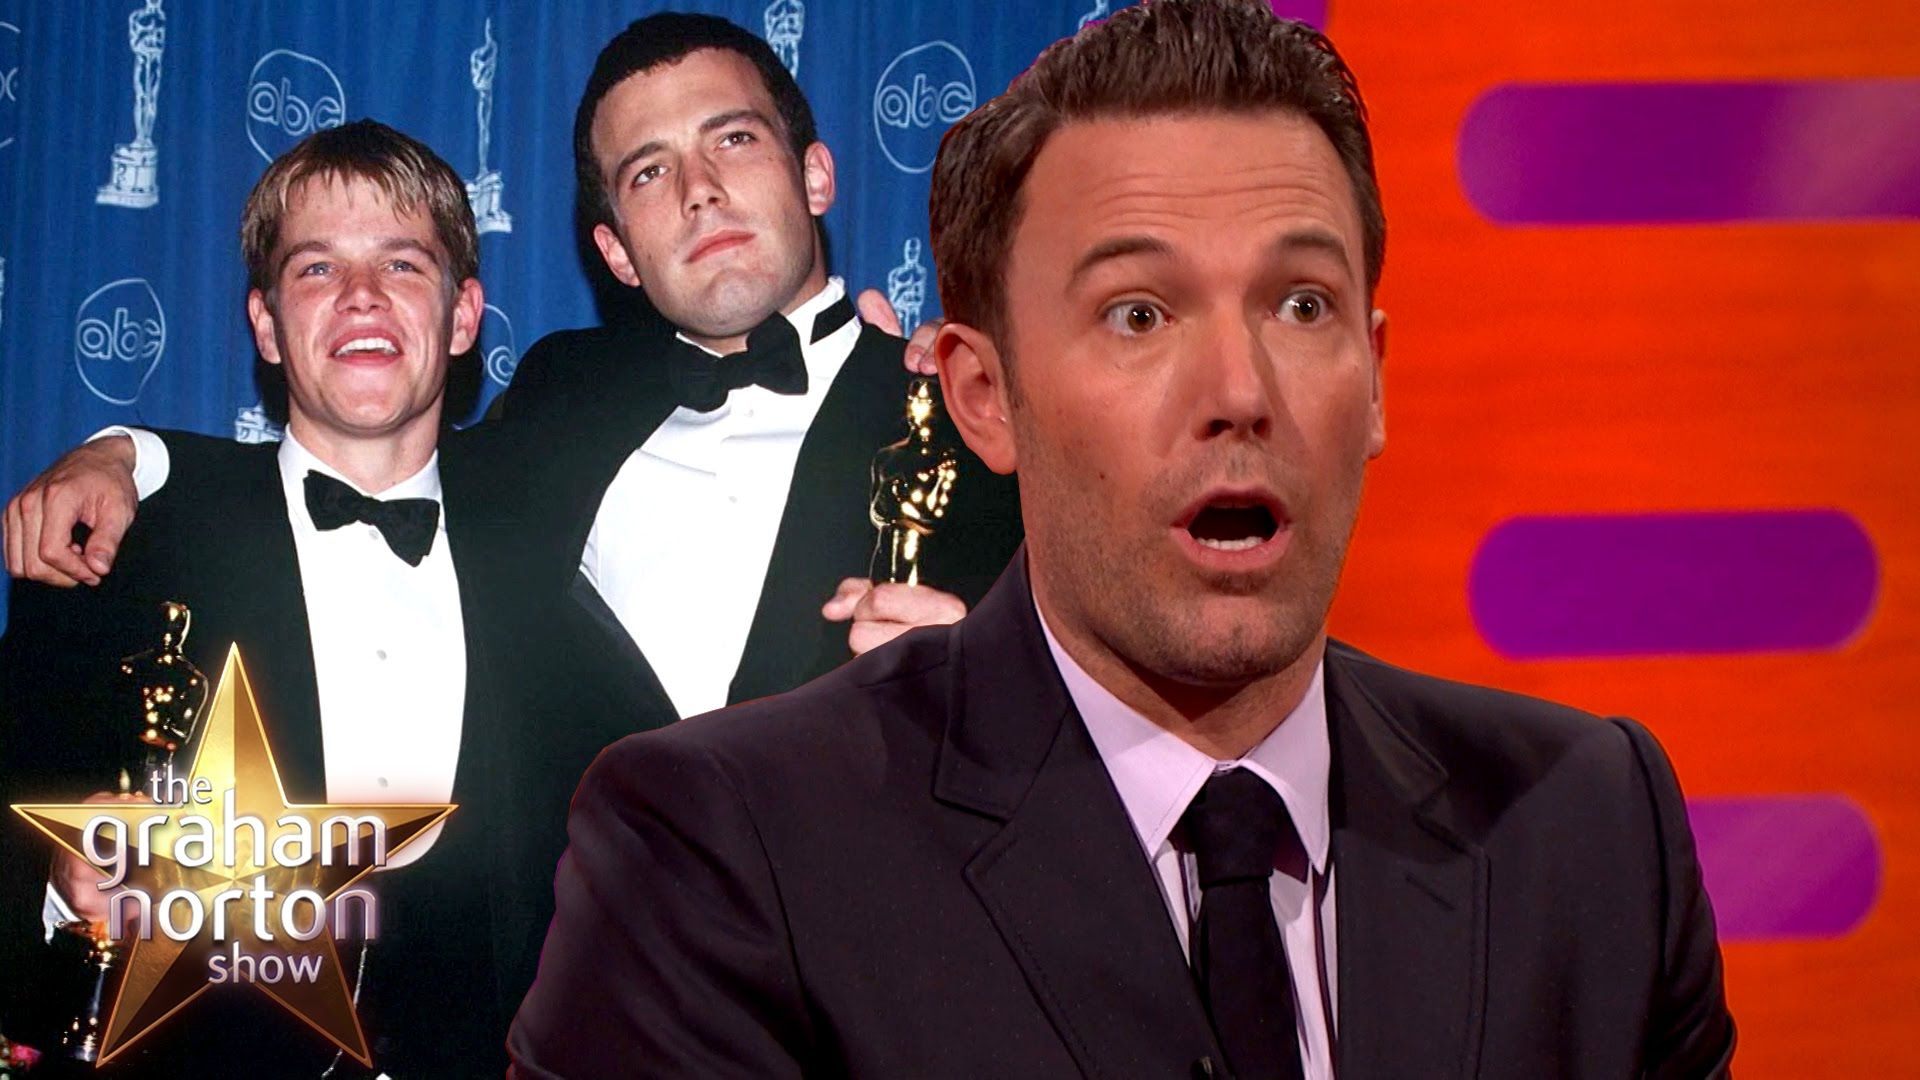 Cool Ben Affleck On Matt Damon And Winning His First Oscar The Graham Norton Show Matt Damon Ben Affleck Norton Show